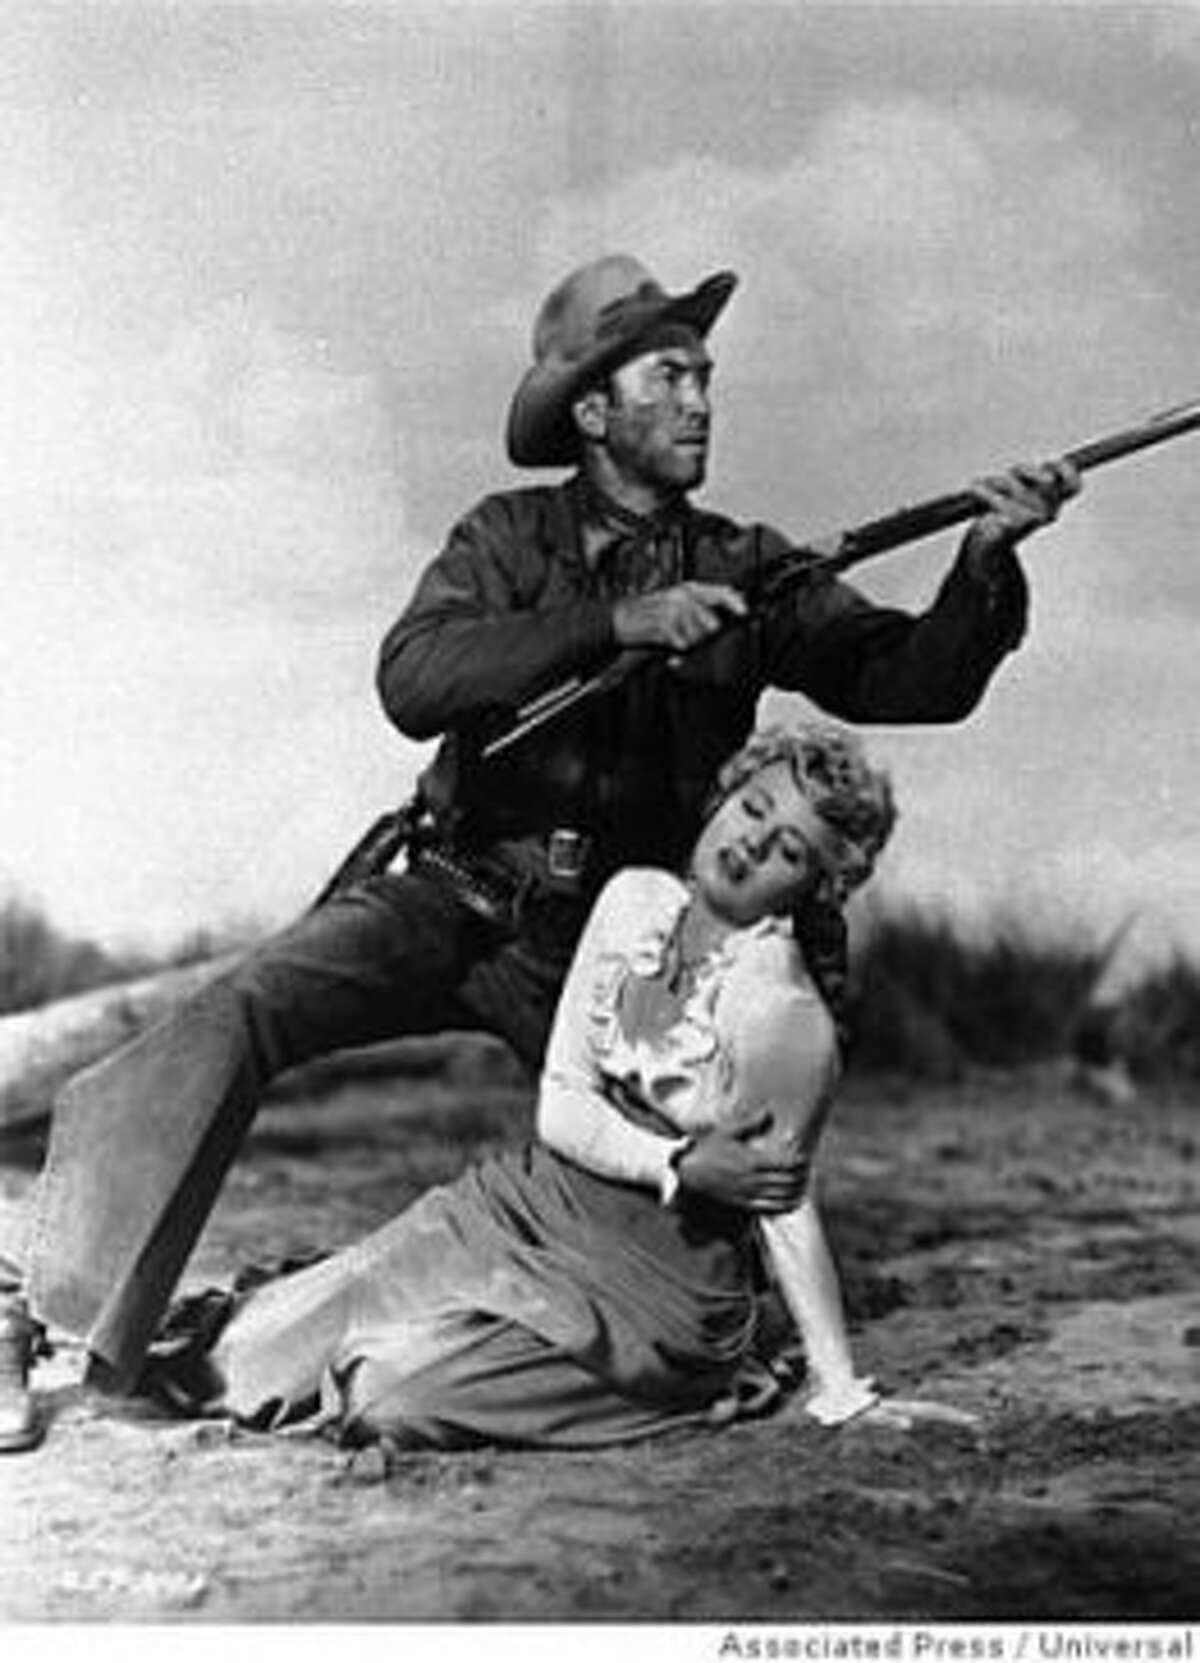 WINCHESTER 73 -- James Stewart (with co-star Shelley Winters) in his first noirish western for Anthony Mann.